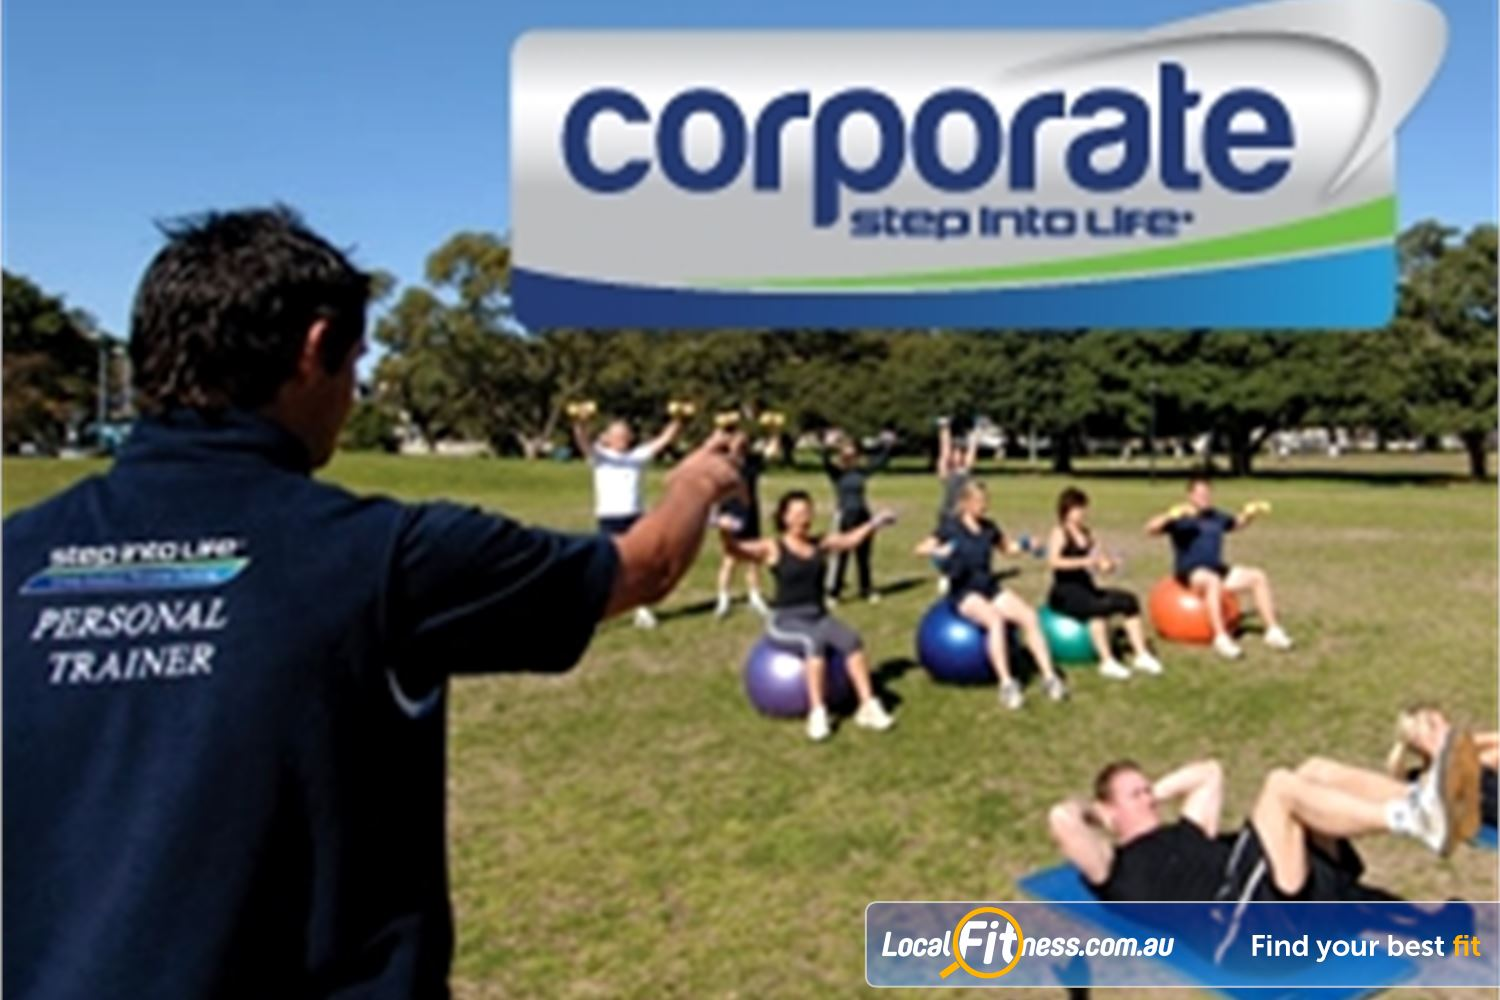 Step into Life Essendon We provide Essendon corporate fitness programs to help businesses stay healthy.